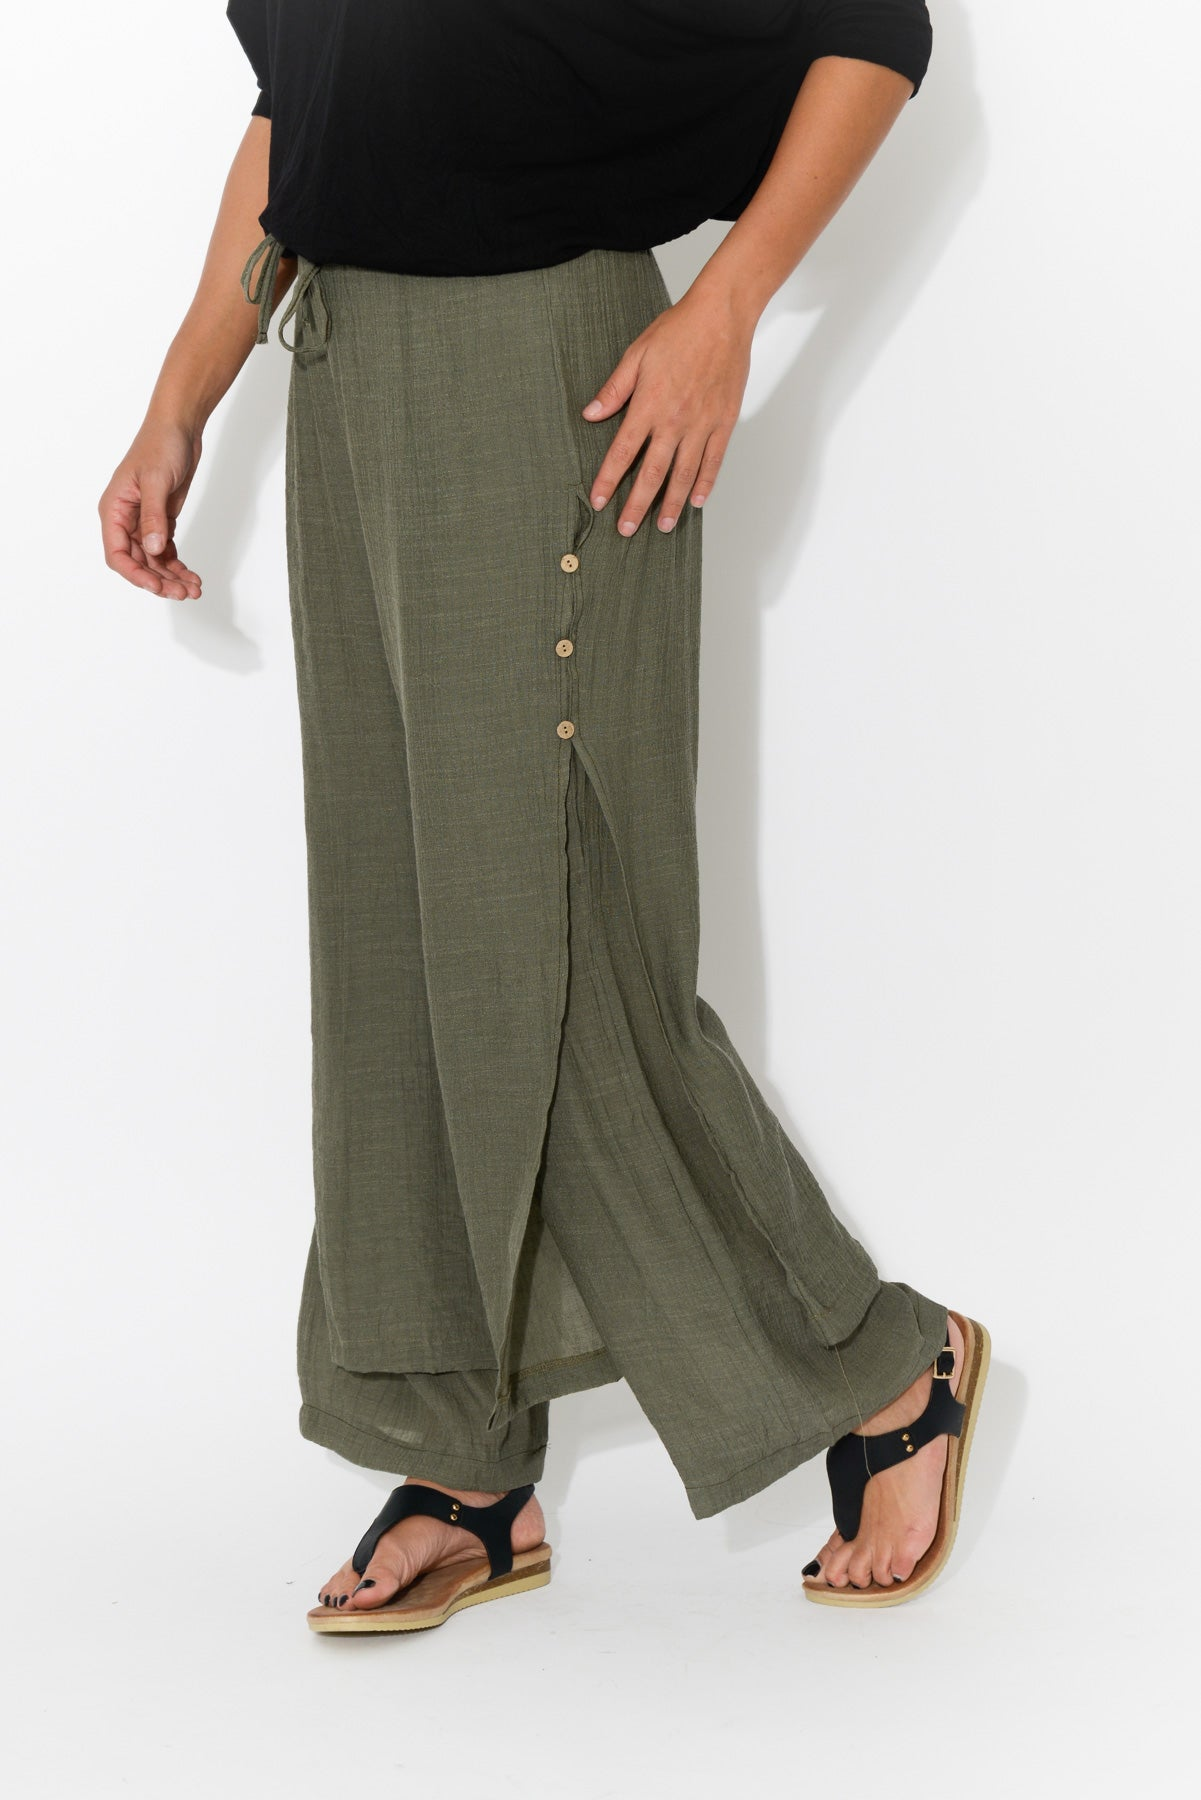 Khaki Layered Wide Leg Pant - Blue Bungalow